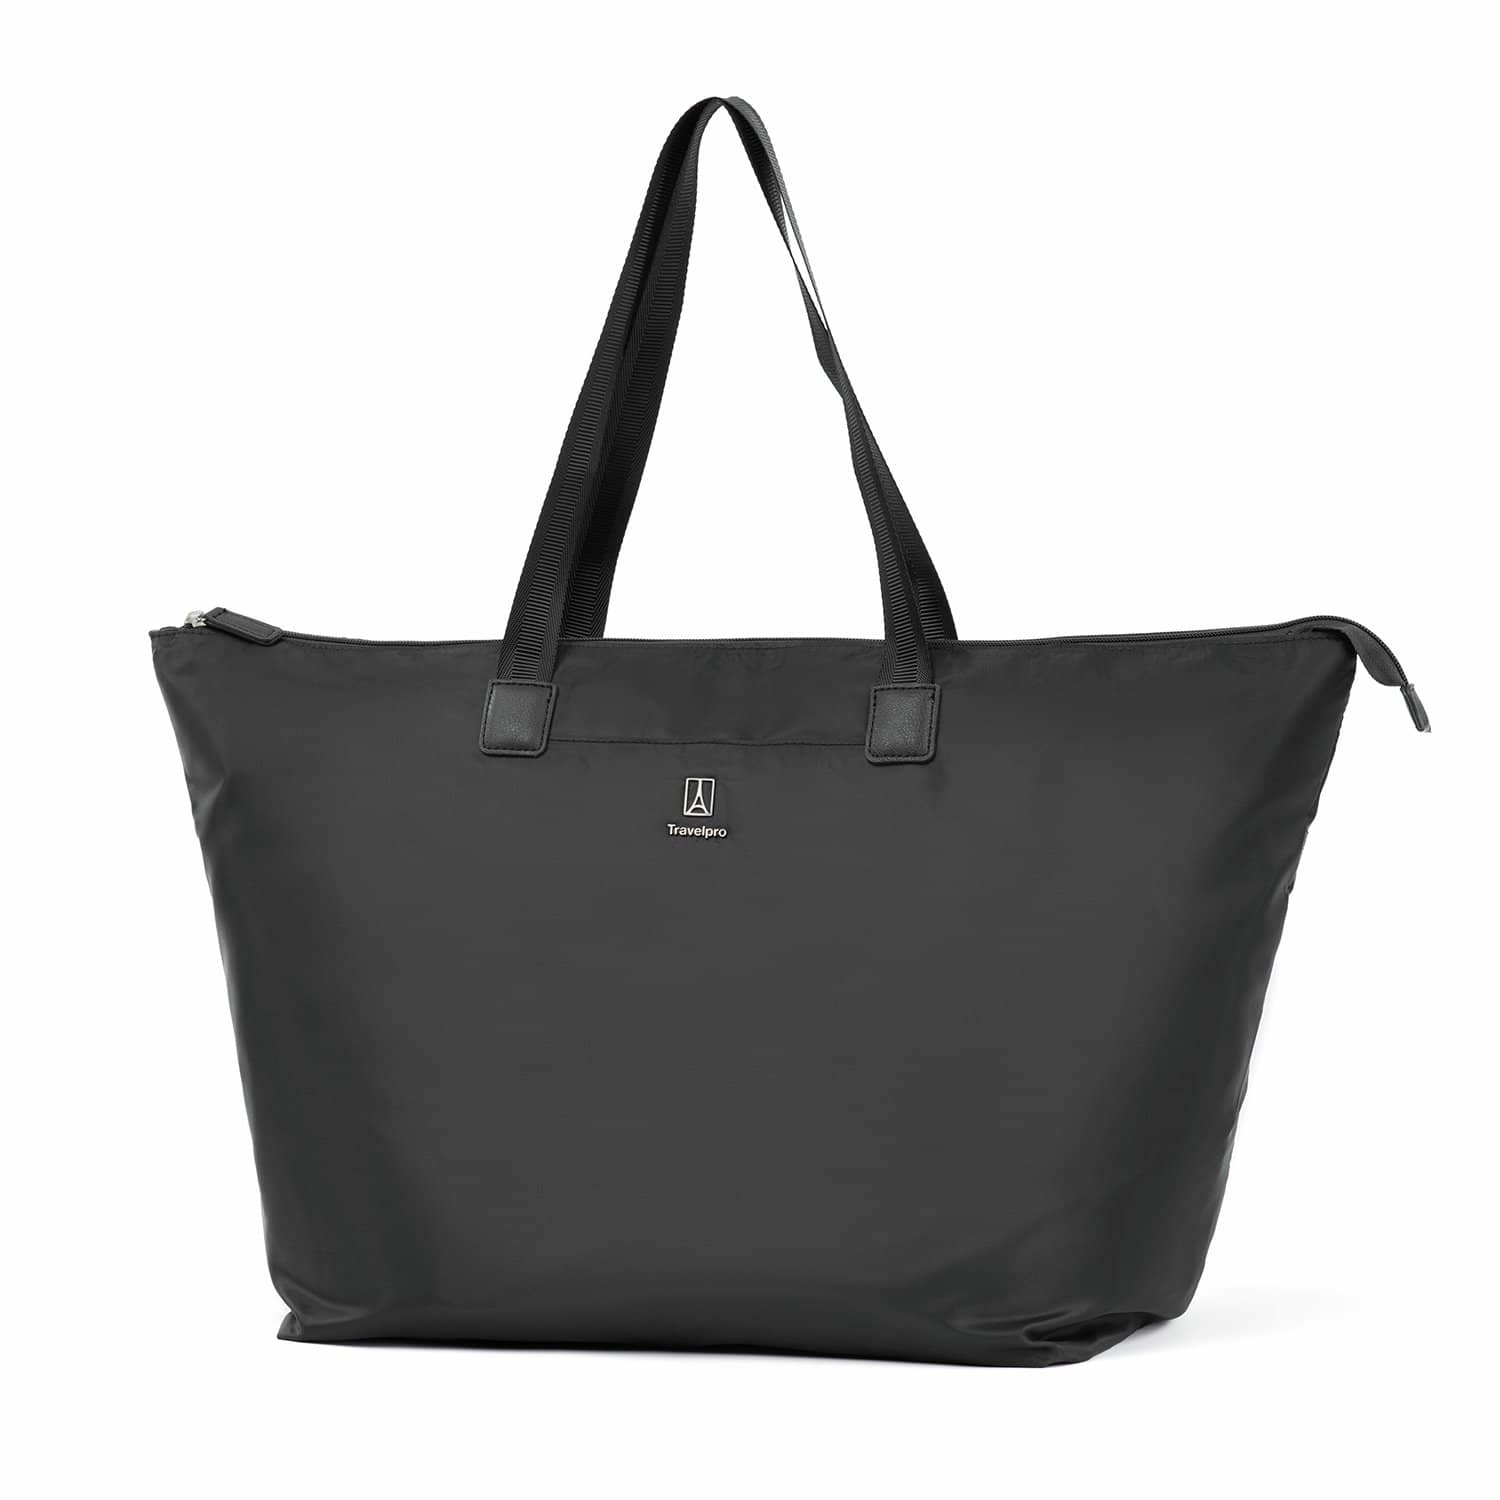 Travelpro Travelpro® Essentials™ Sparepack™ Foldable Tote BLACK